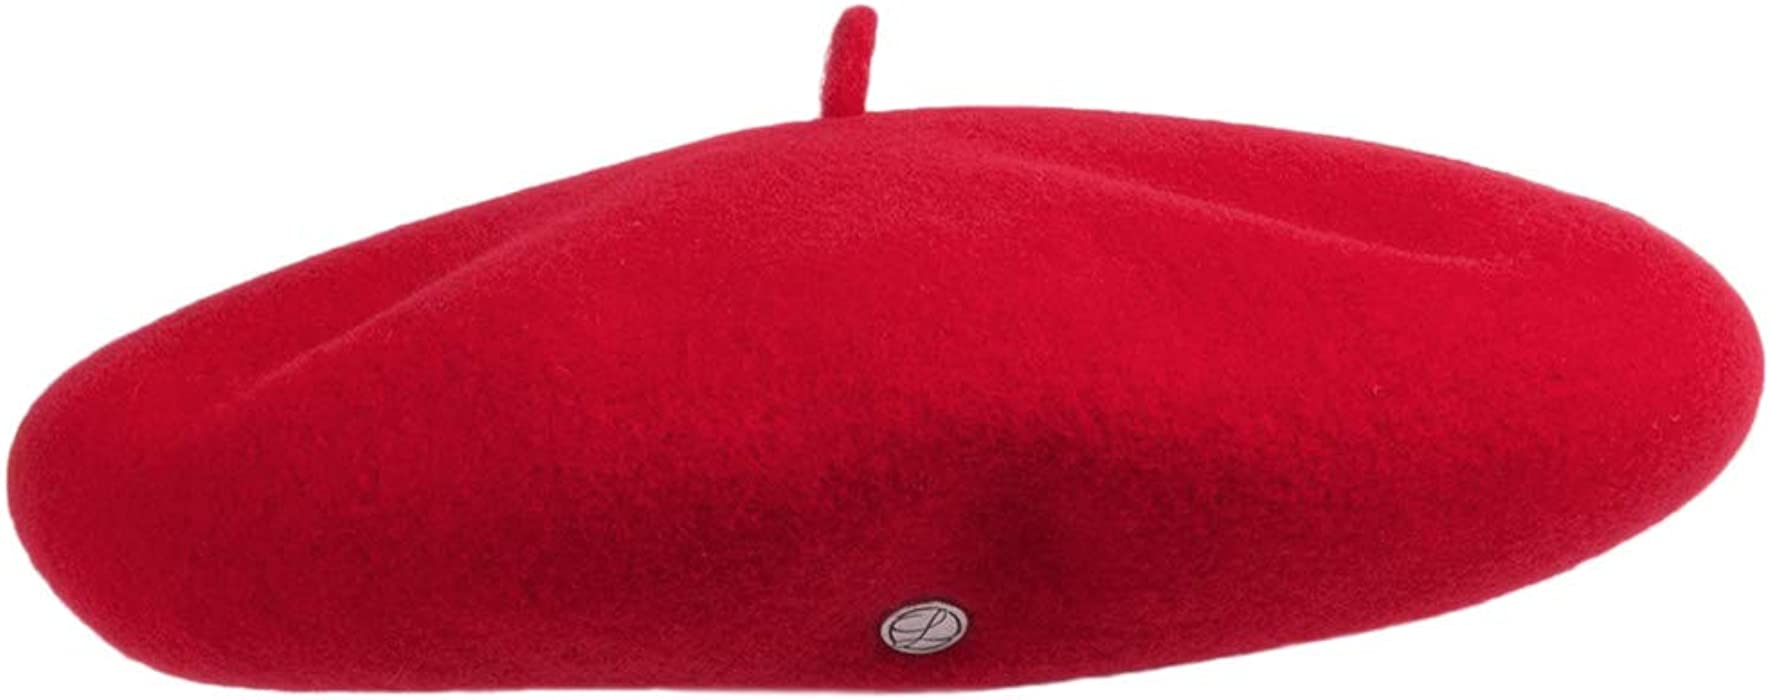 1c6a5ed5325f8 Laulhere Hats Cashmere Beret - Red 1-Size  Amazon.co.uk  Clothing